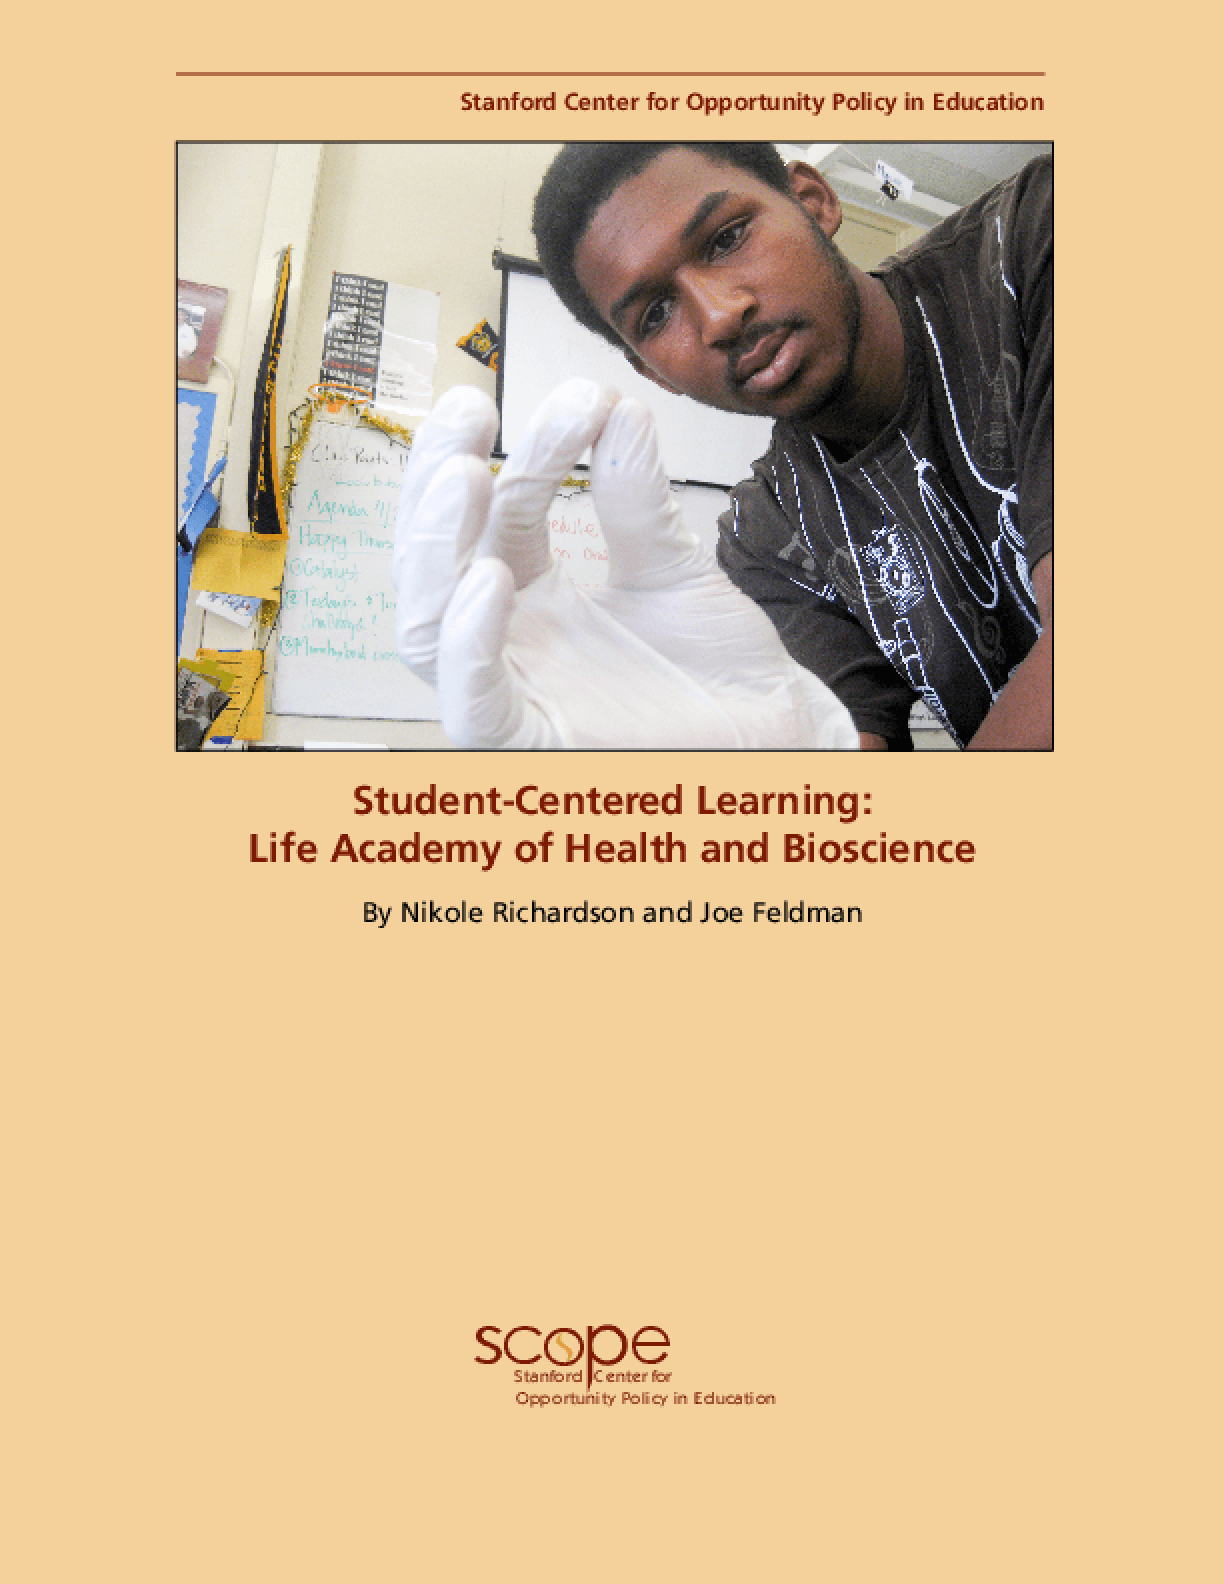 Student-Centered Learning: Life Academy of Health and Bioscience